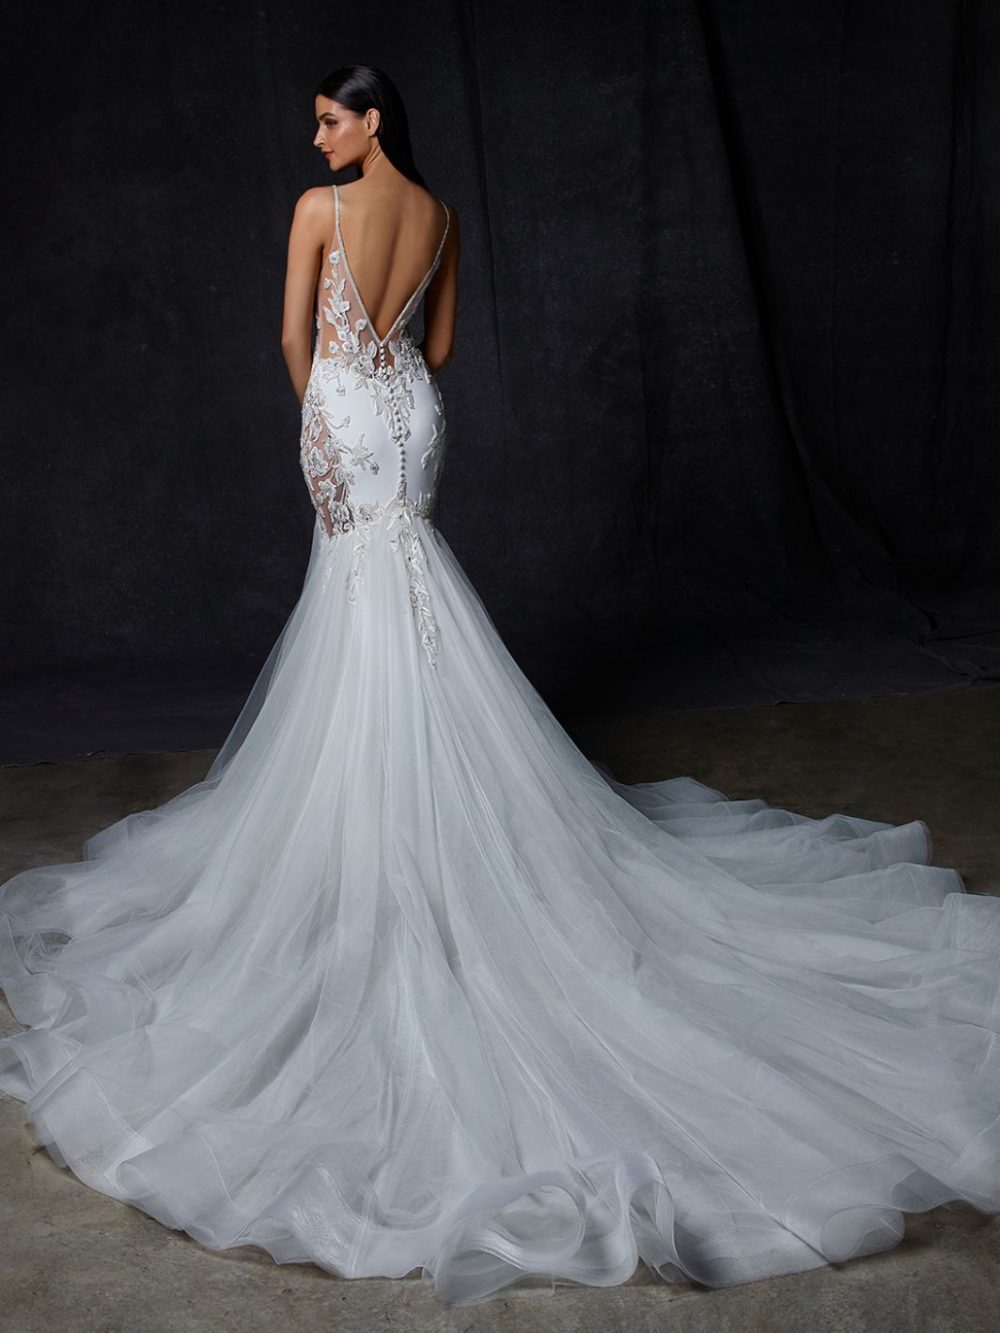 Ovia by Enzoani Wedding gown dress back